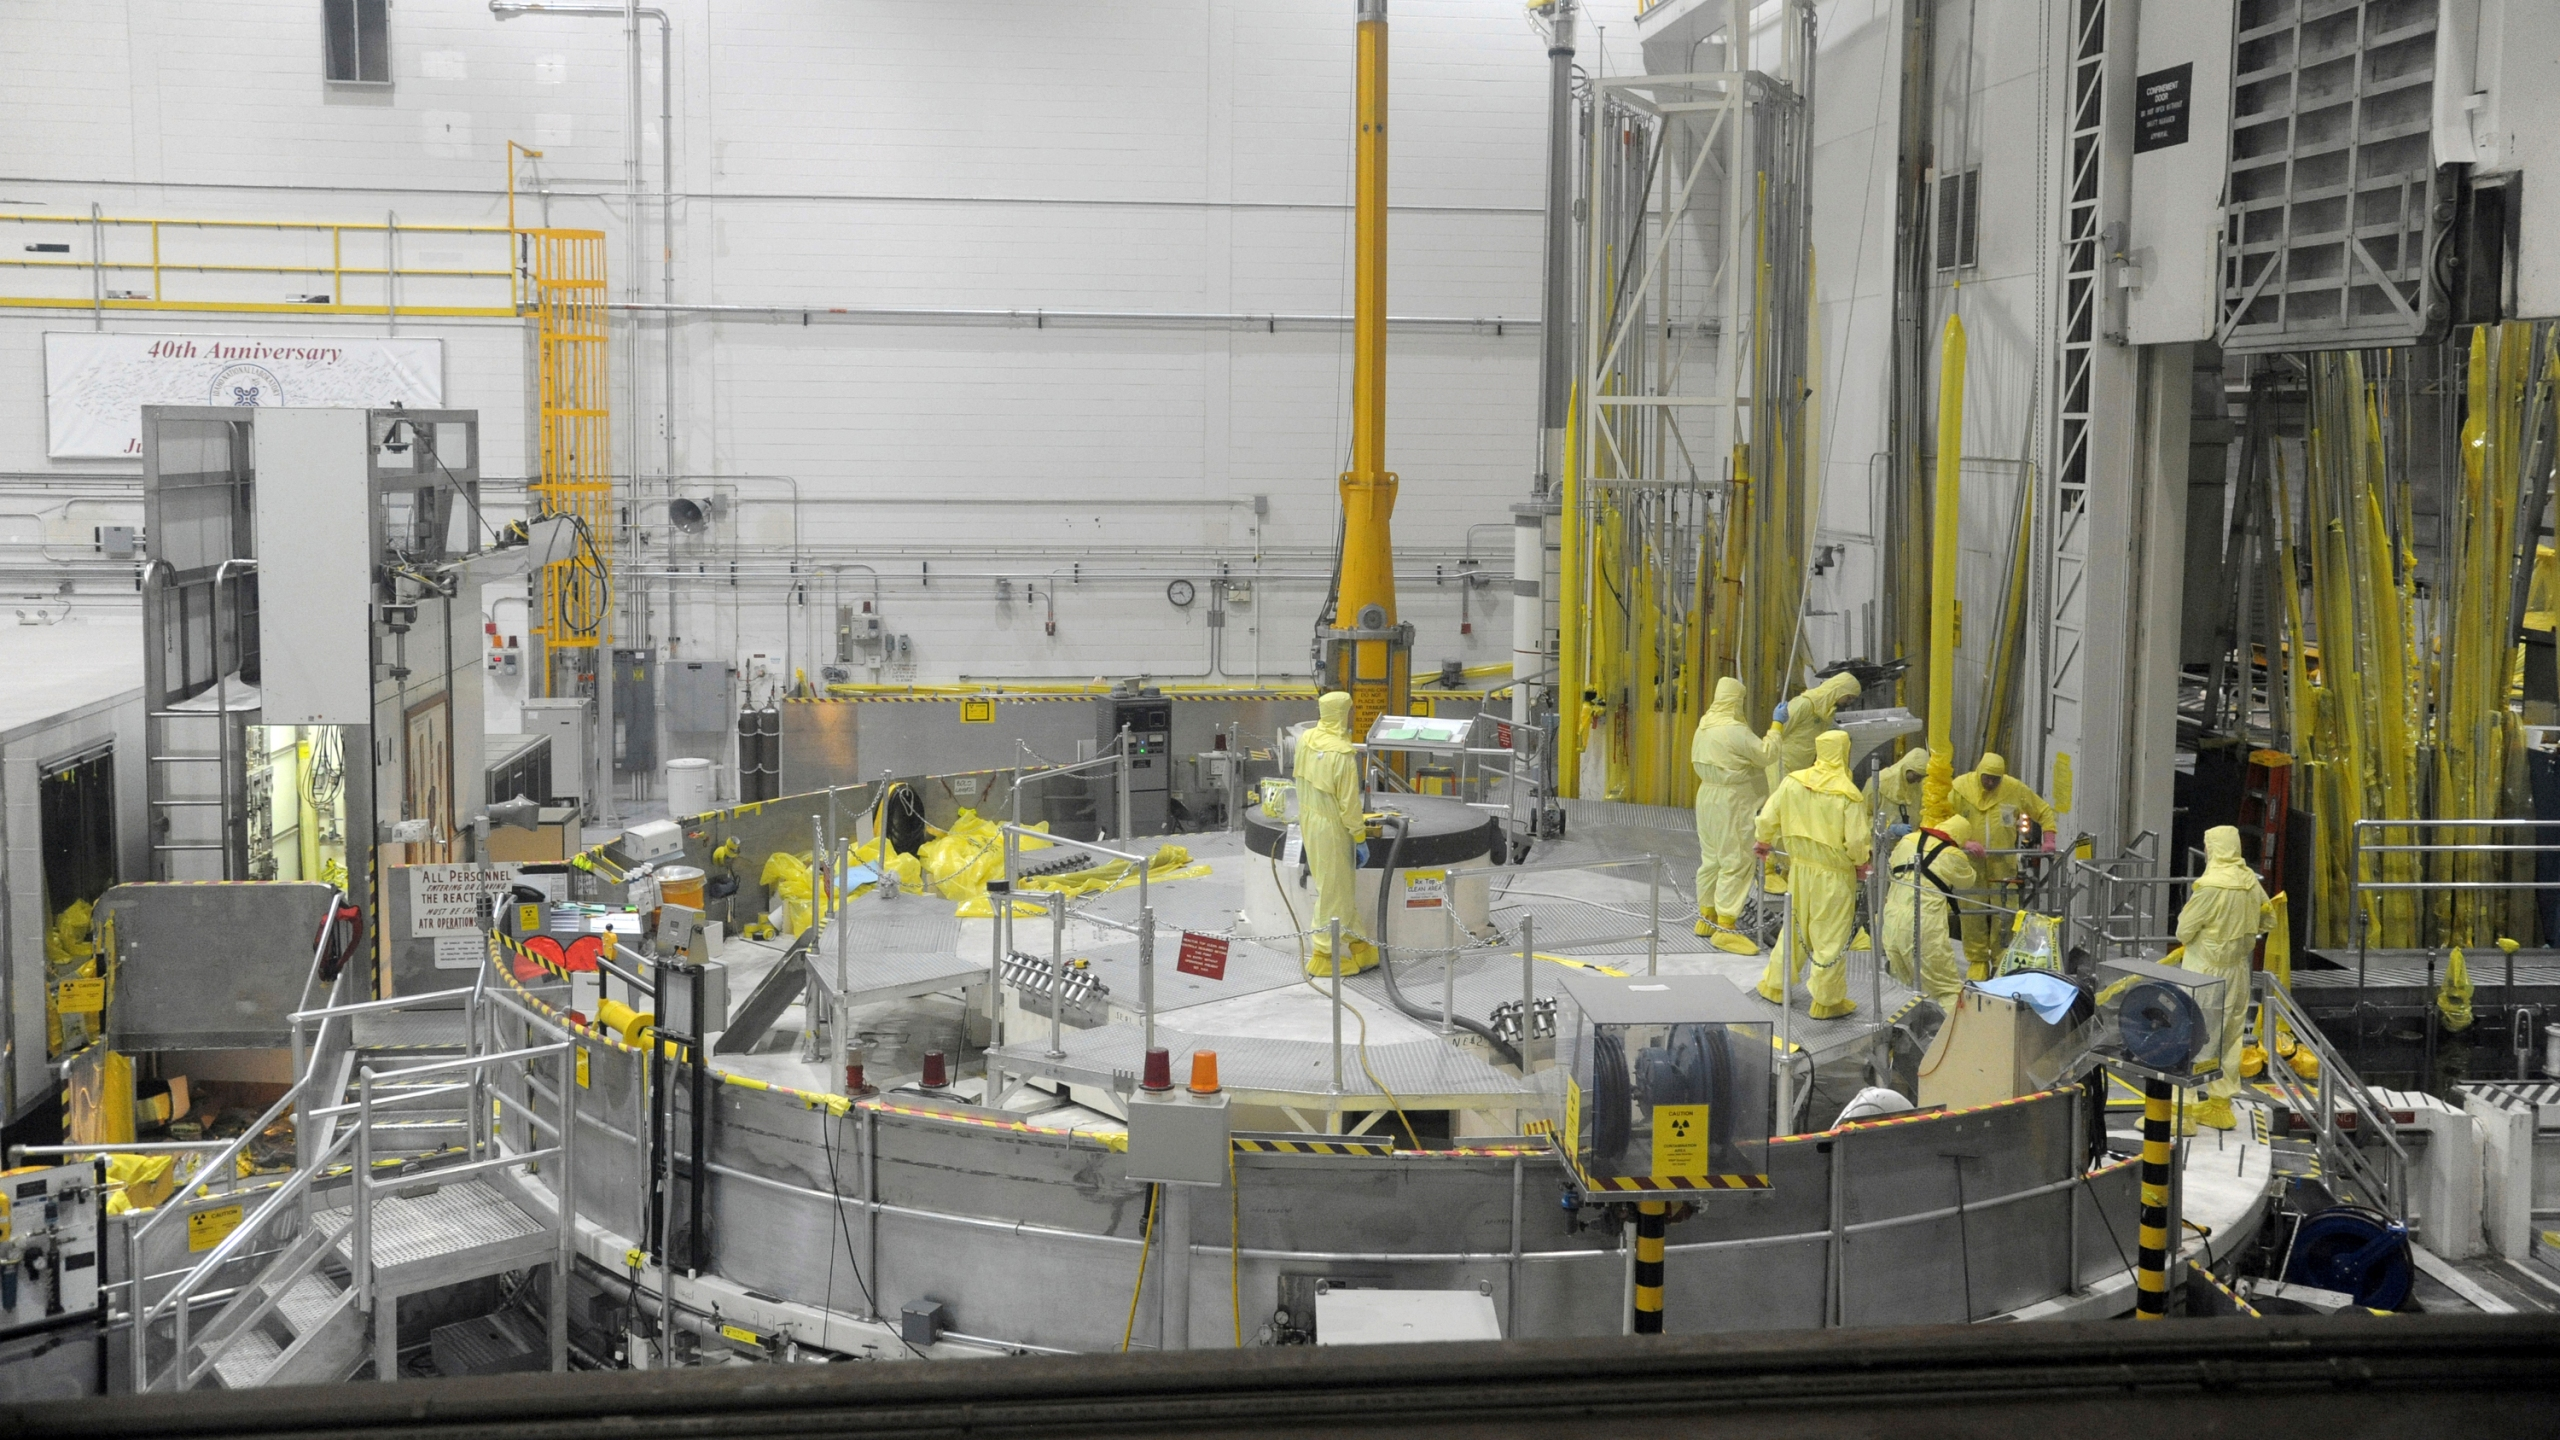 In this May 7, 2013 photo released by Idaho National Laboratory shows Nuclear operations professional personnel work above the Advanced Test Reactor at Idaho National Laboratory's desert site about 50 miles west of Idaho Falls, Idaho. The small cylindrical section in the center of the platform has access ports that allow access to the reactor core for refueling and experiment loading and unloading during routine outages. (Idaho National Laboratory via AP)